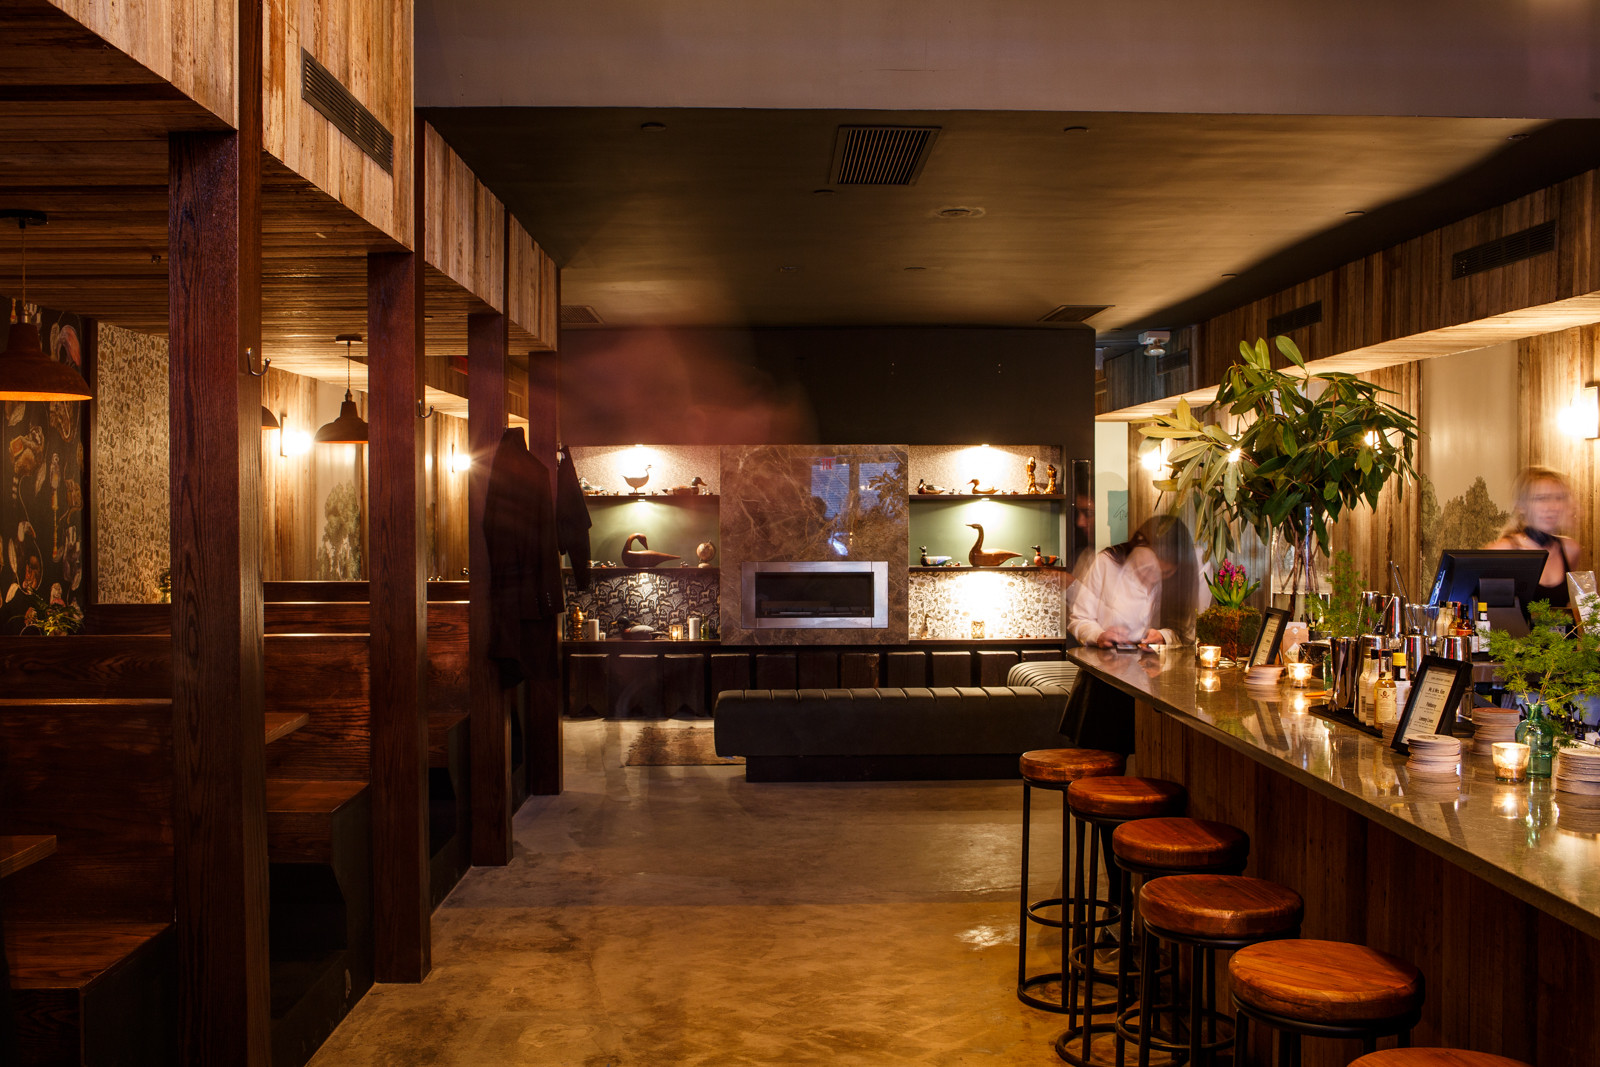 Full Buyout event space at The Lately Bar in New York City, NYC, NY/NJ Area